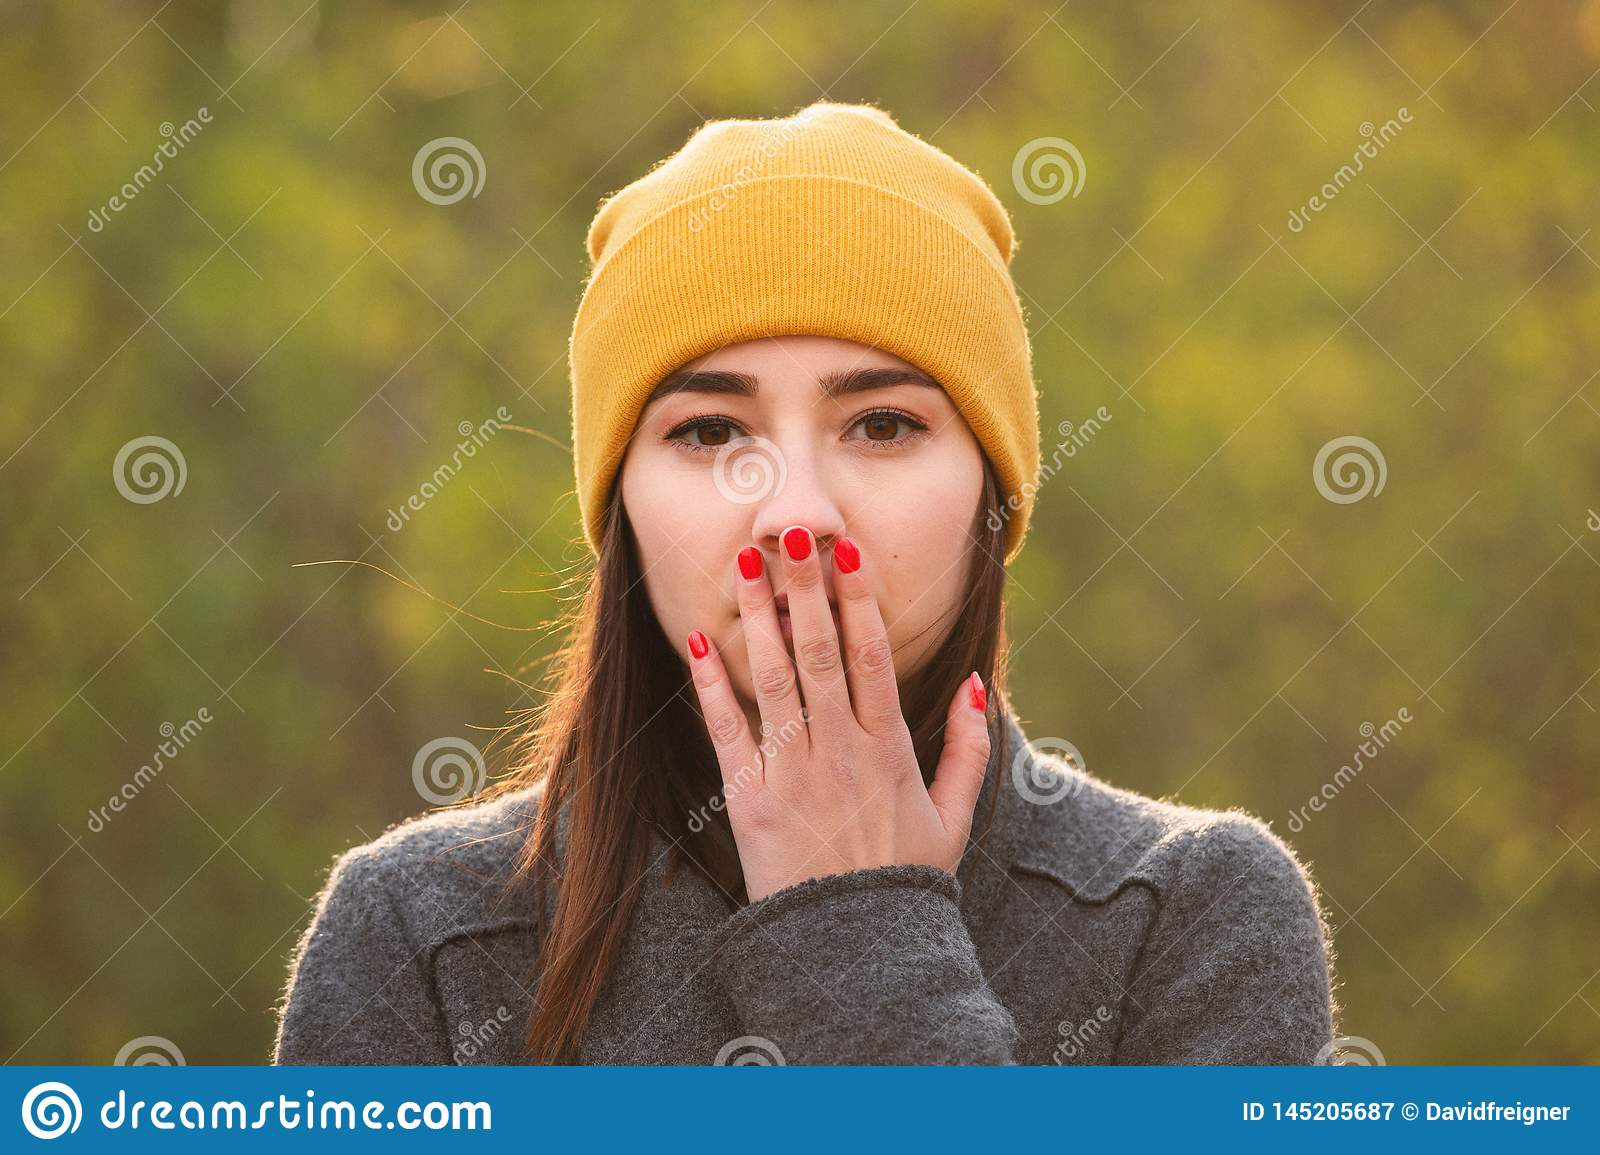 Young woman covering her mouth with her hand